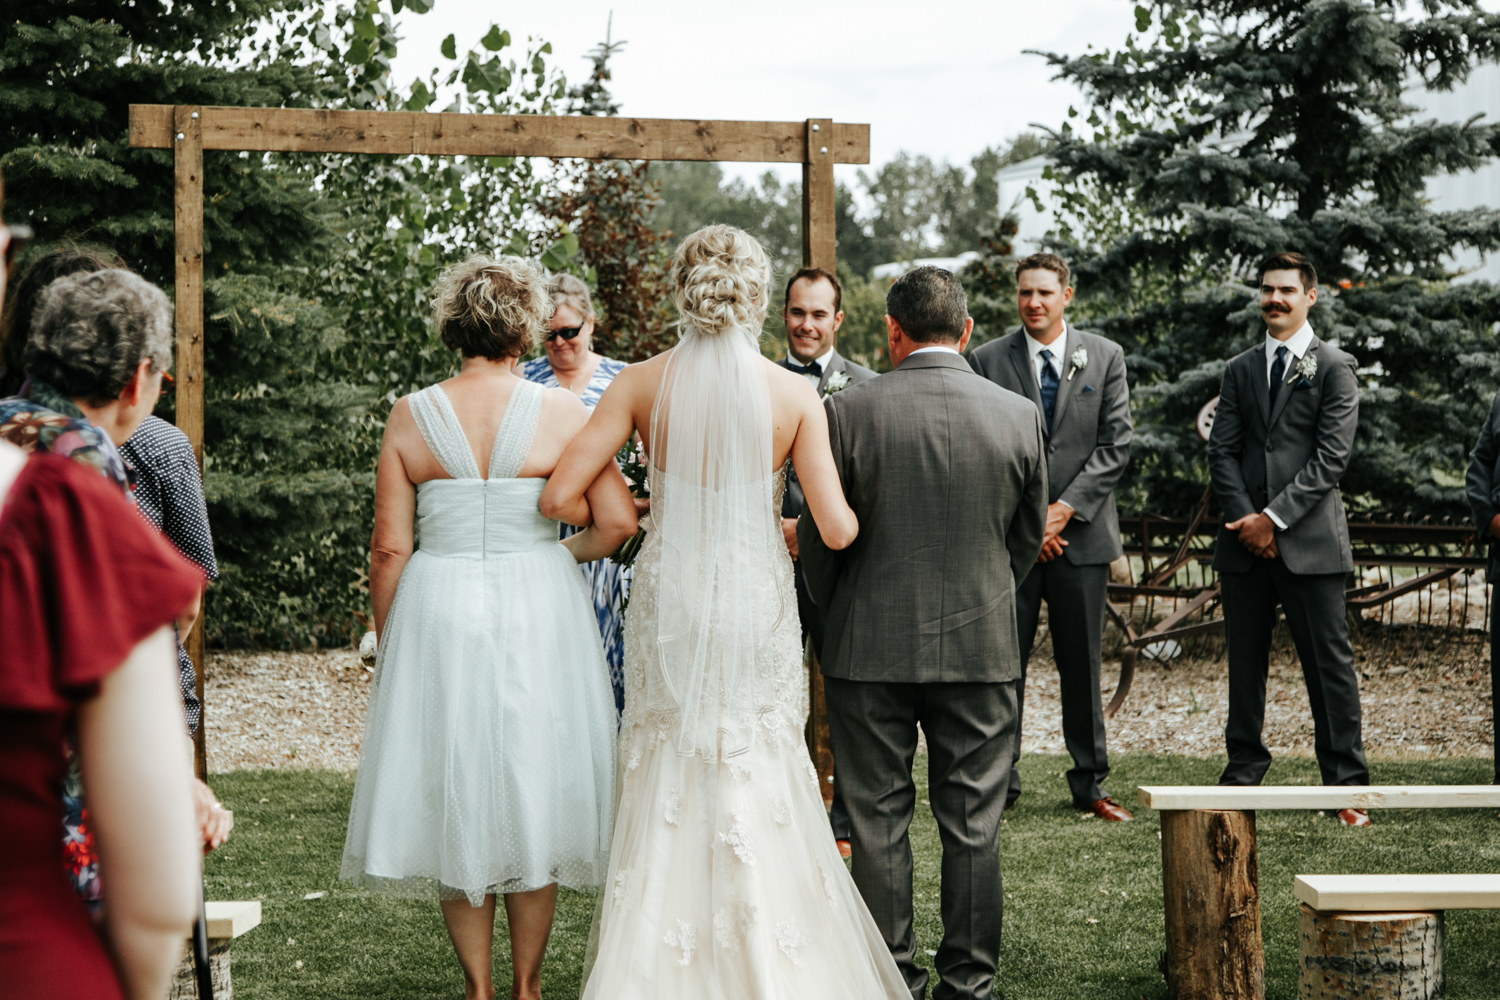 lethbridge-photographer-readymade-community-centre-wedding-coaldale-bailey-joel-picture-image-photo-6.jpg